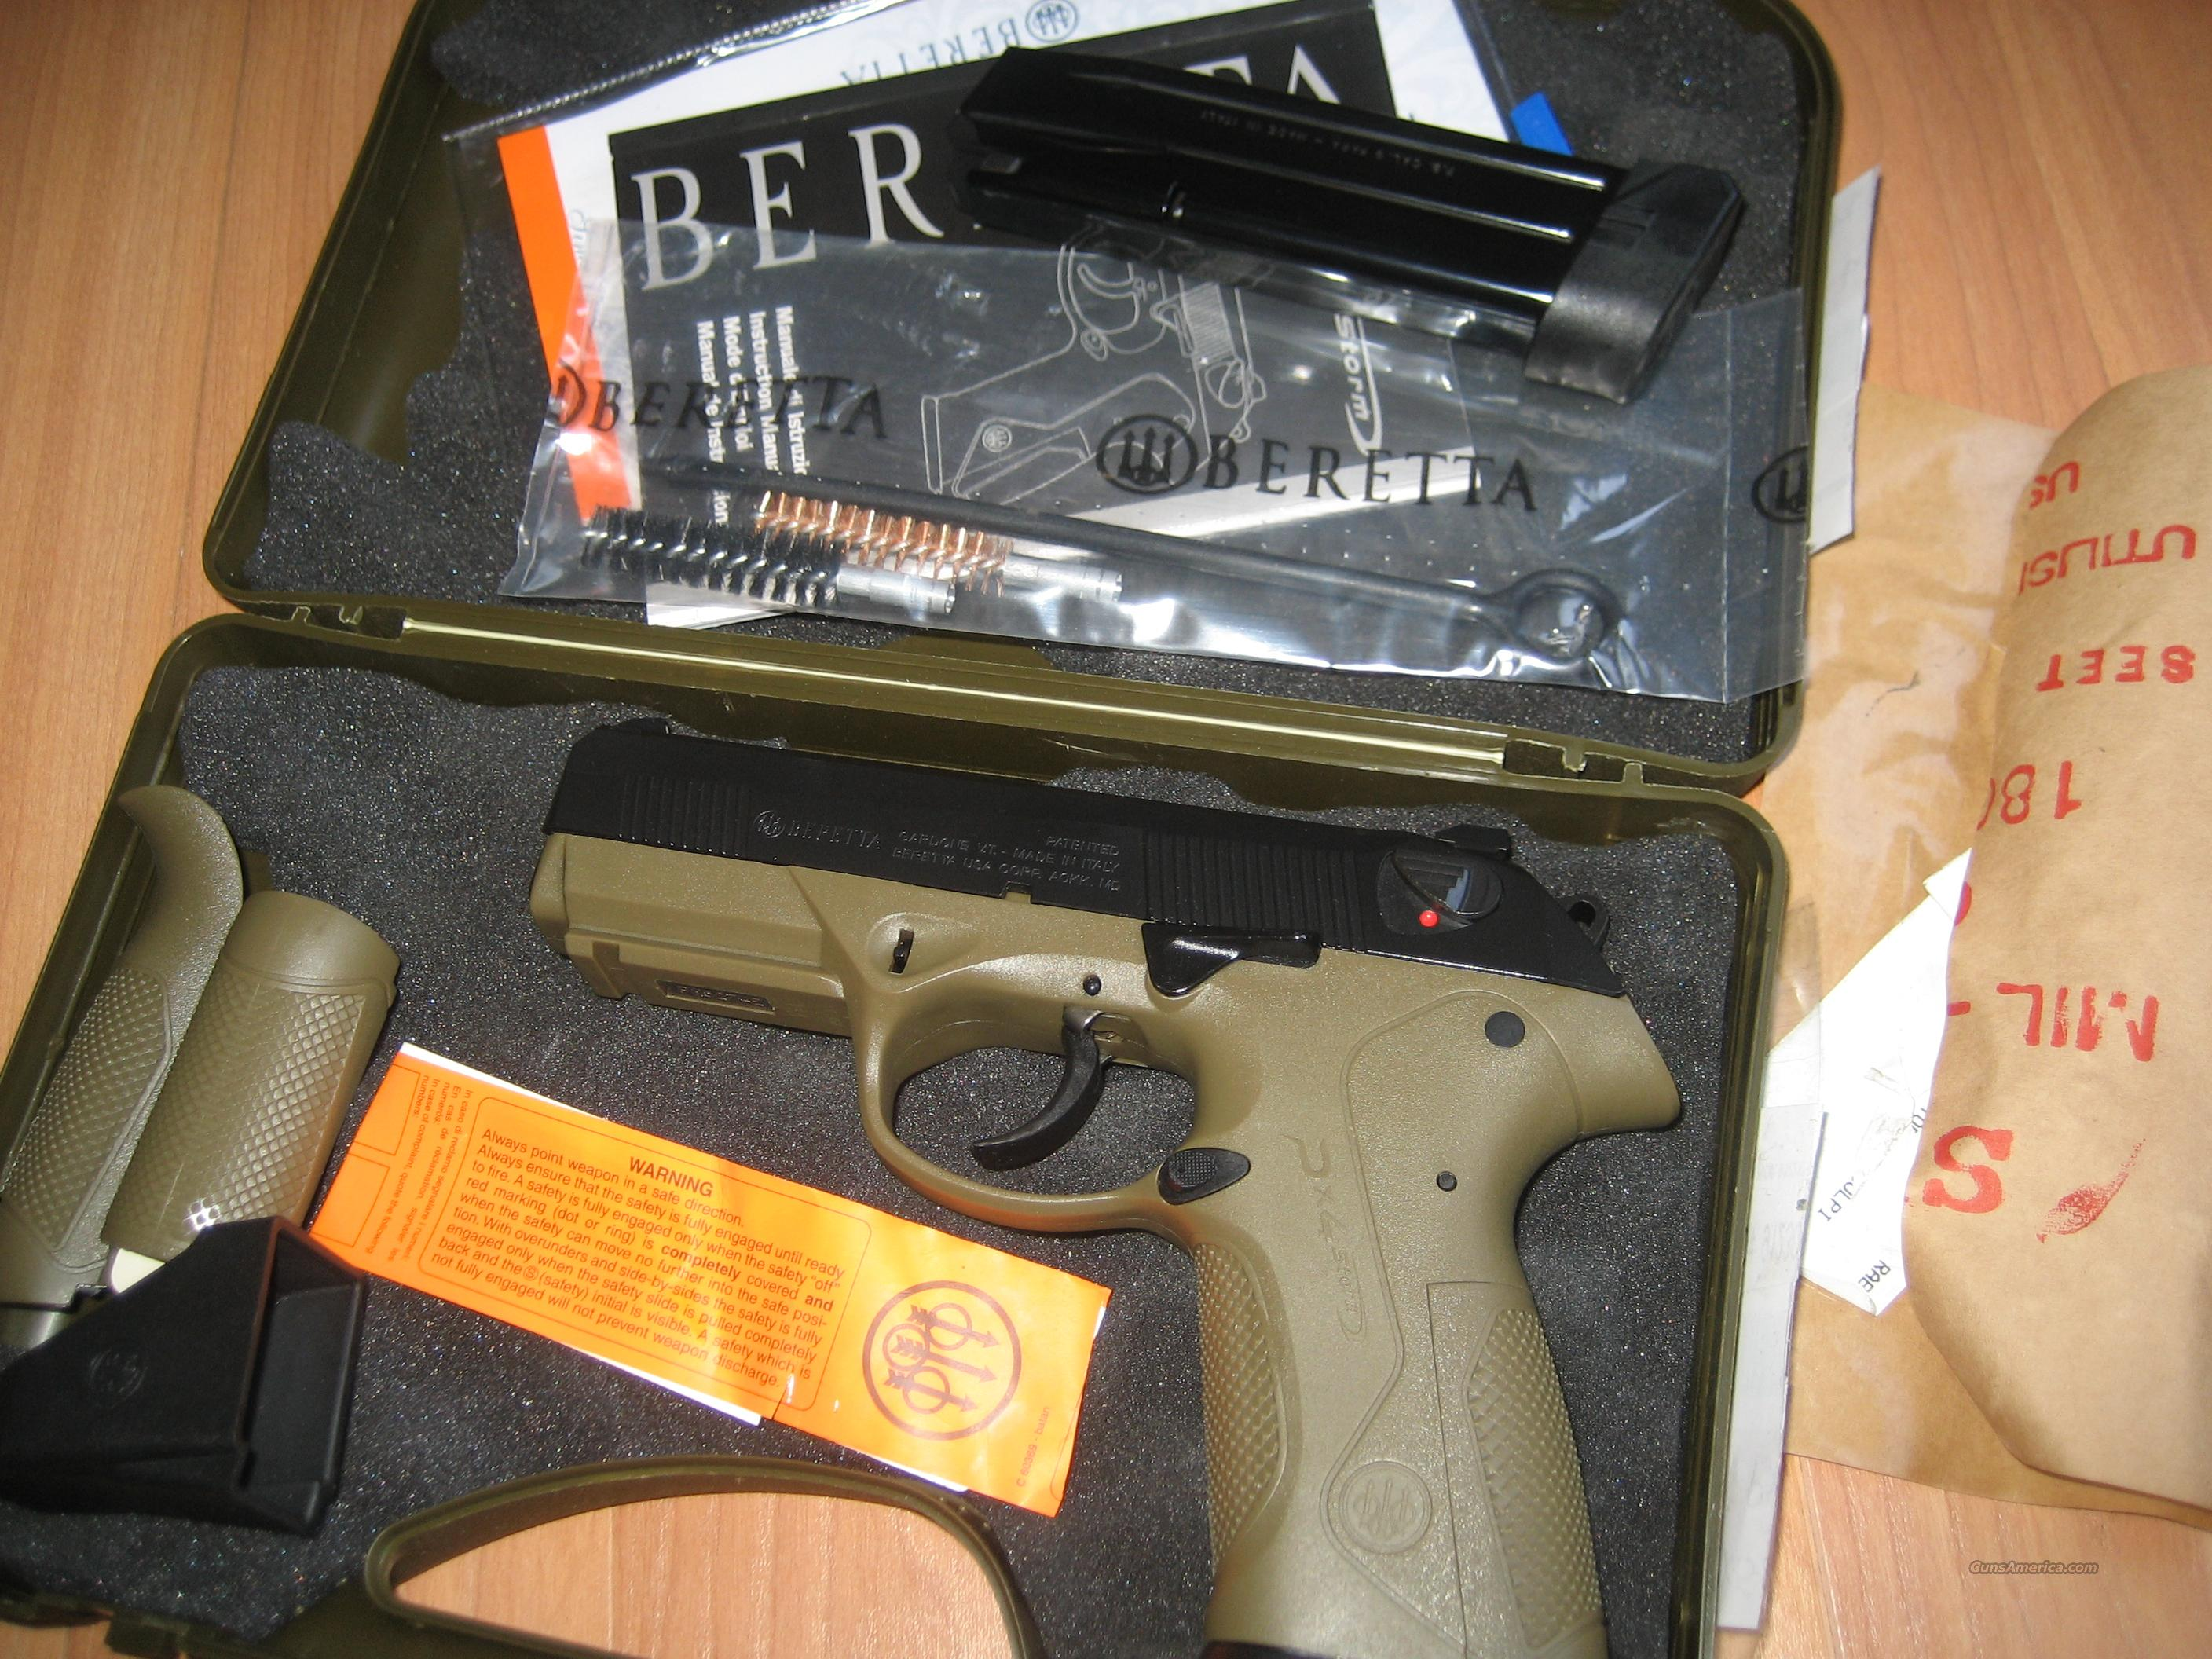 Beretta PX4 Storm 9mm - Factory Upgrades! - Type G, Beretta Factory Trigger Job, Beretta Stealth Decocker, O.D. Green!  Guns > Pistols > Beretta Pistols > Polymer Frame